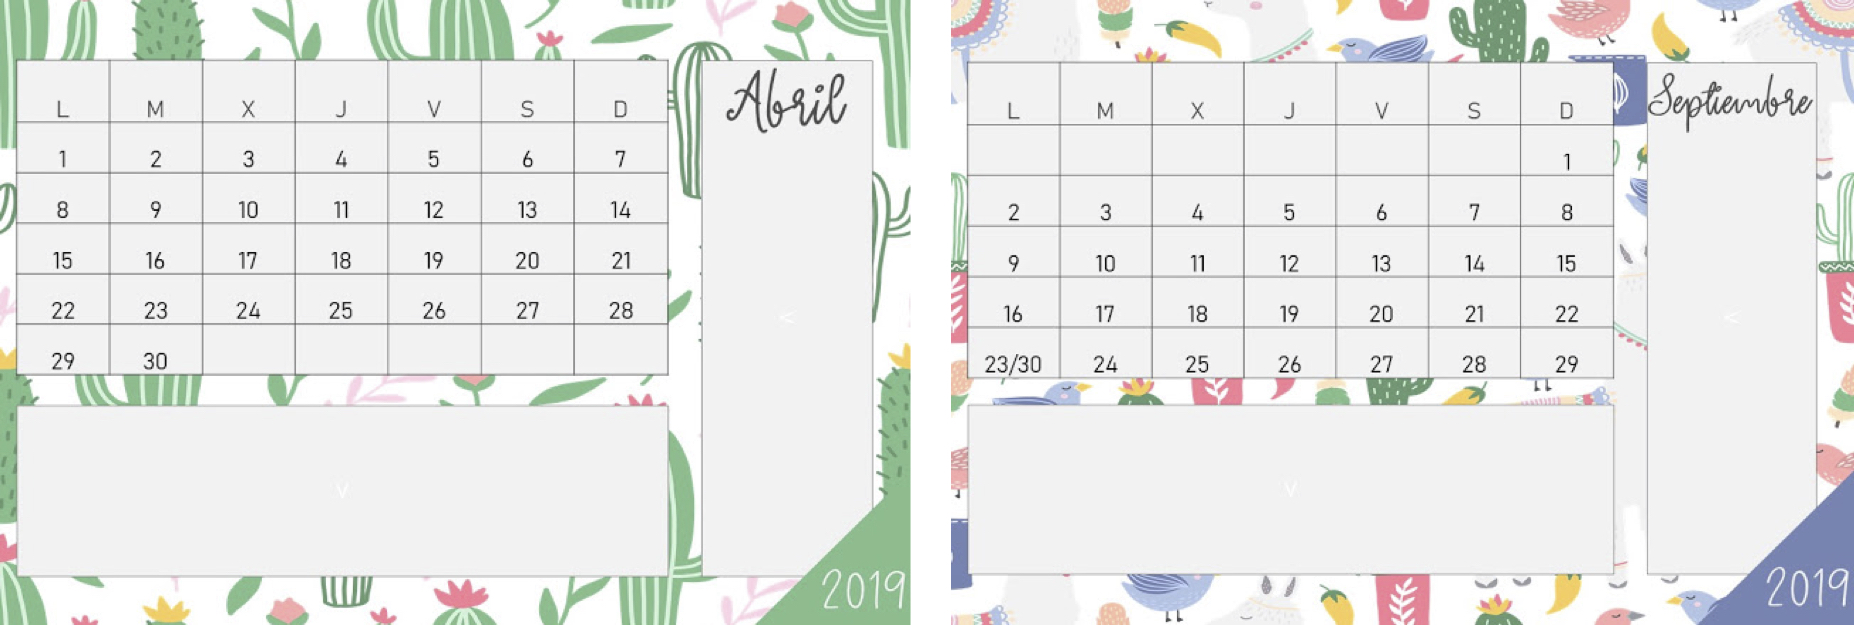 Calendario Planning.Imprimible Plantilla Calendario Organizacion Planning